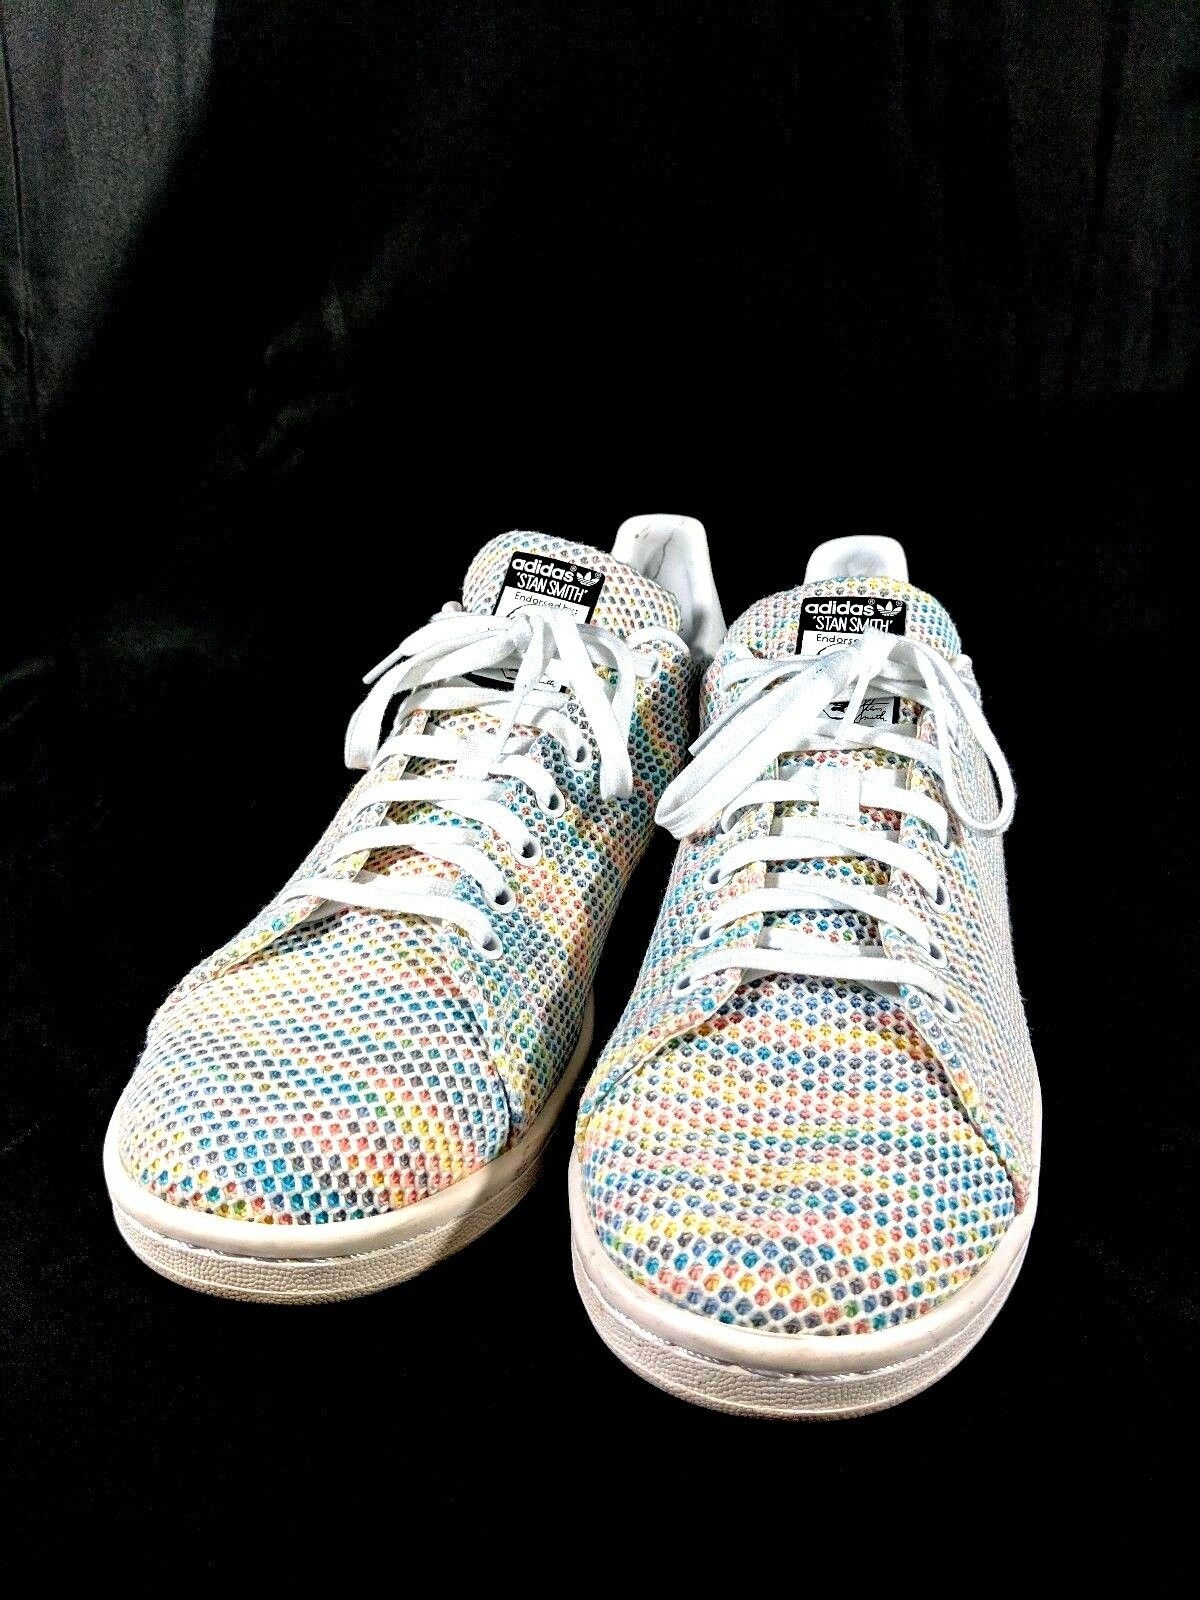 Adidas Sz 12 shoes PK Stan Smith Mesh Primeknit Tennis S82250 White Multicolor